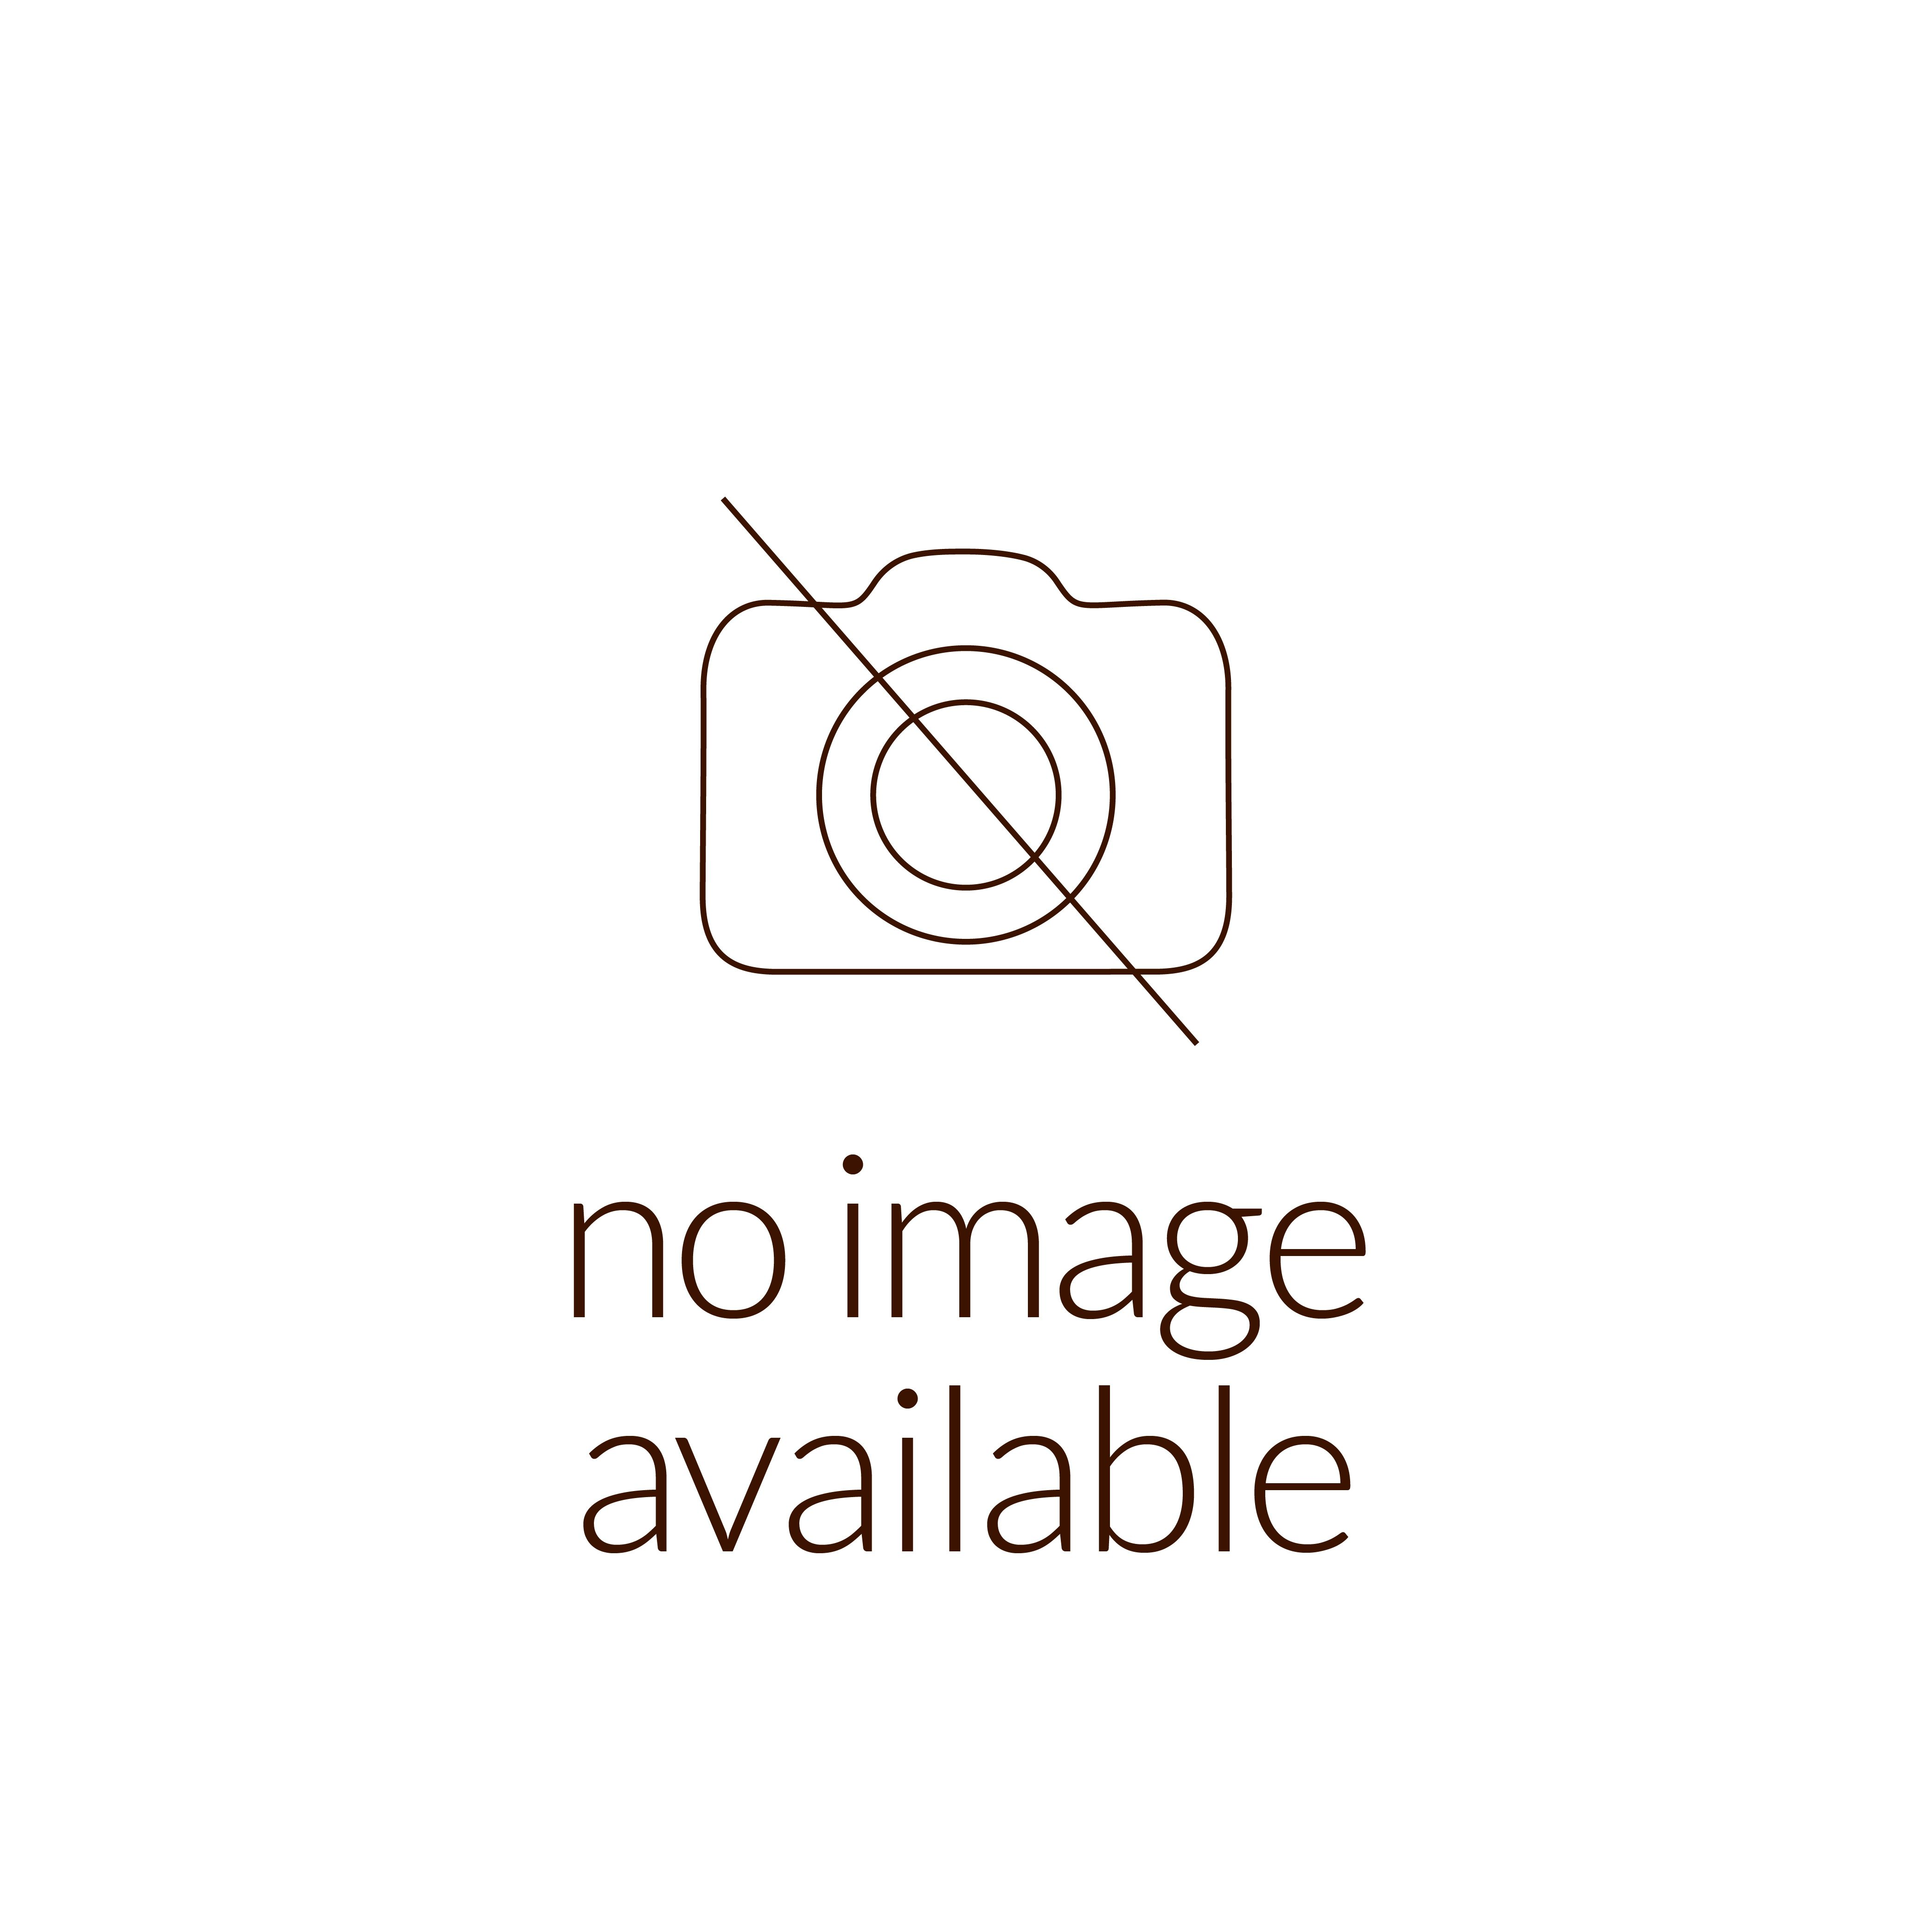 Israel – United Emirates Peace Agreement, Silver 999, 38.7mm, 1 oz